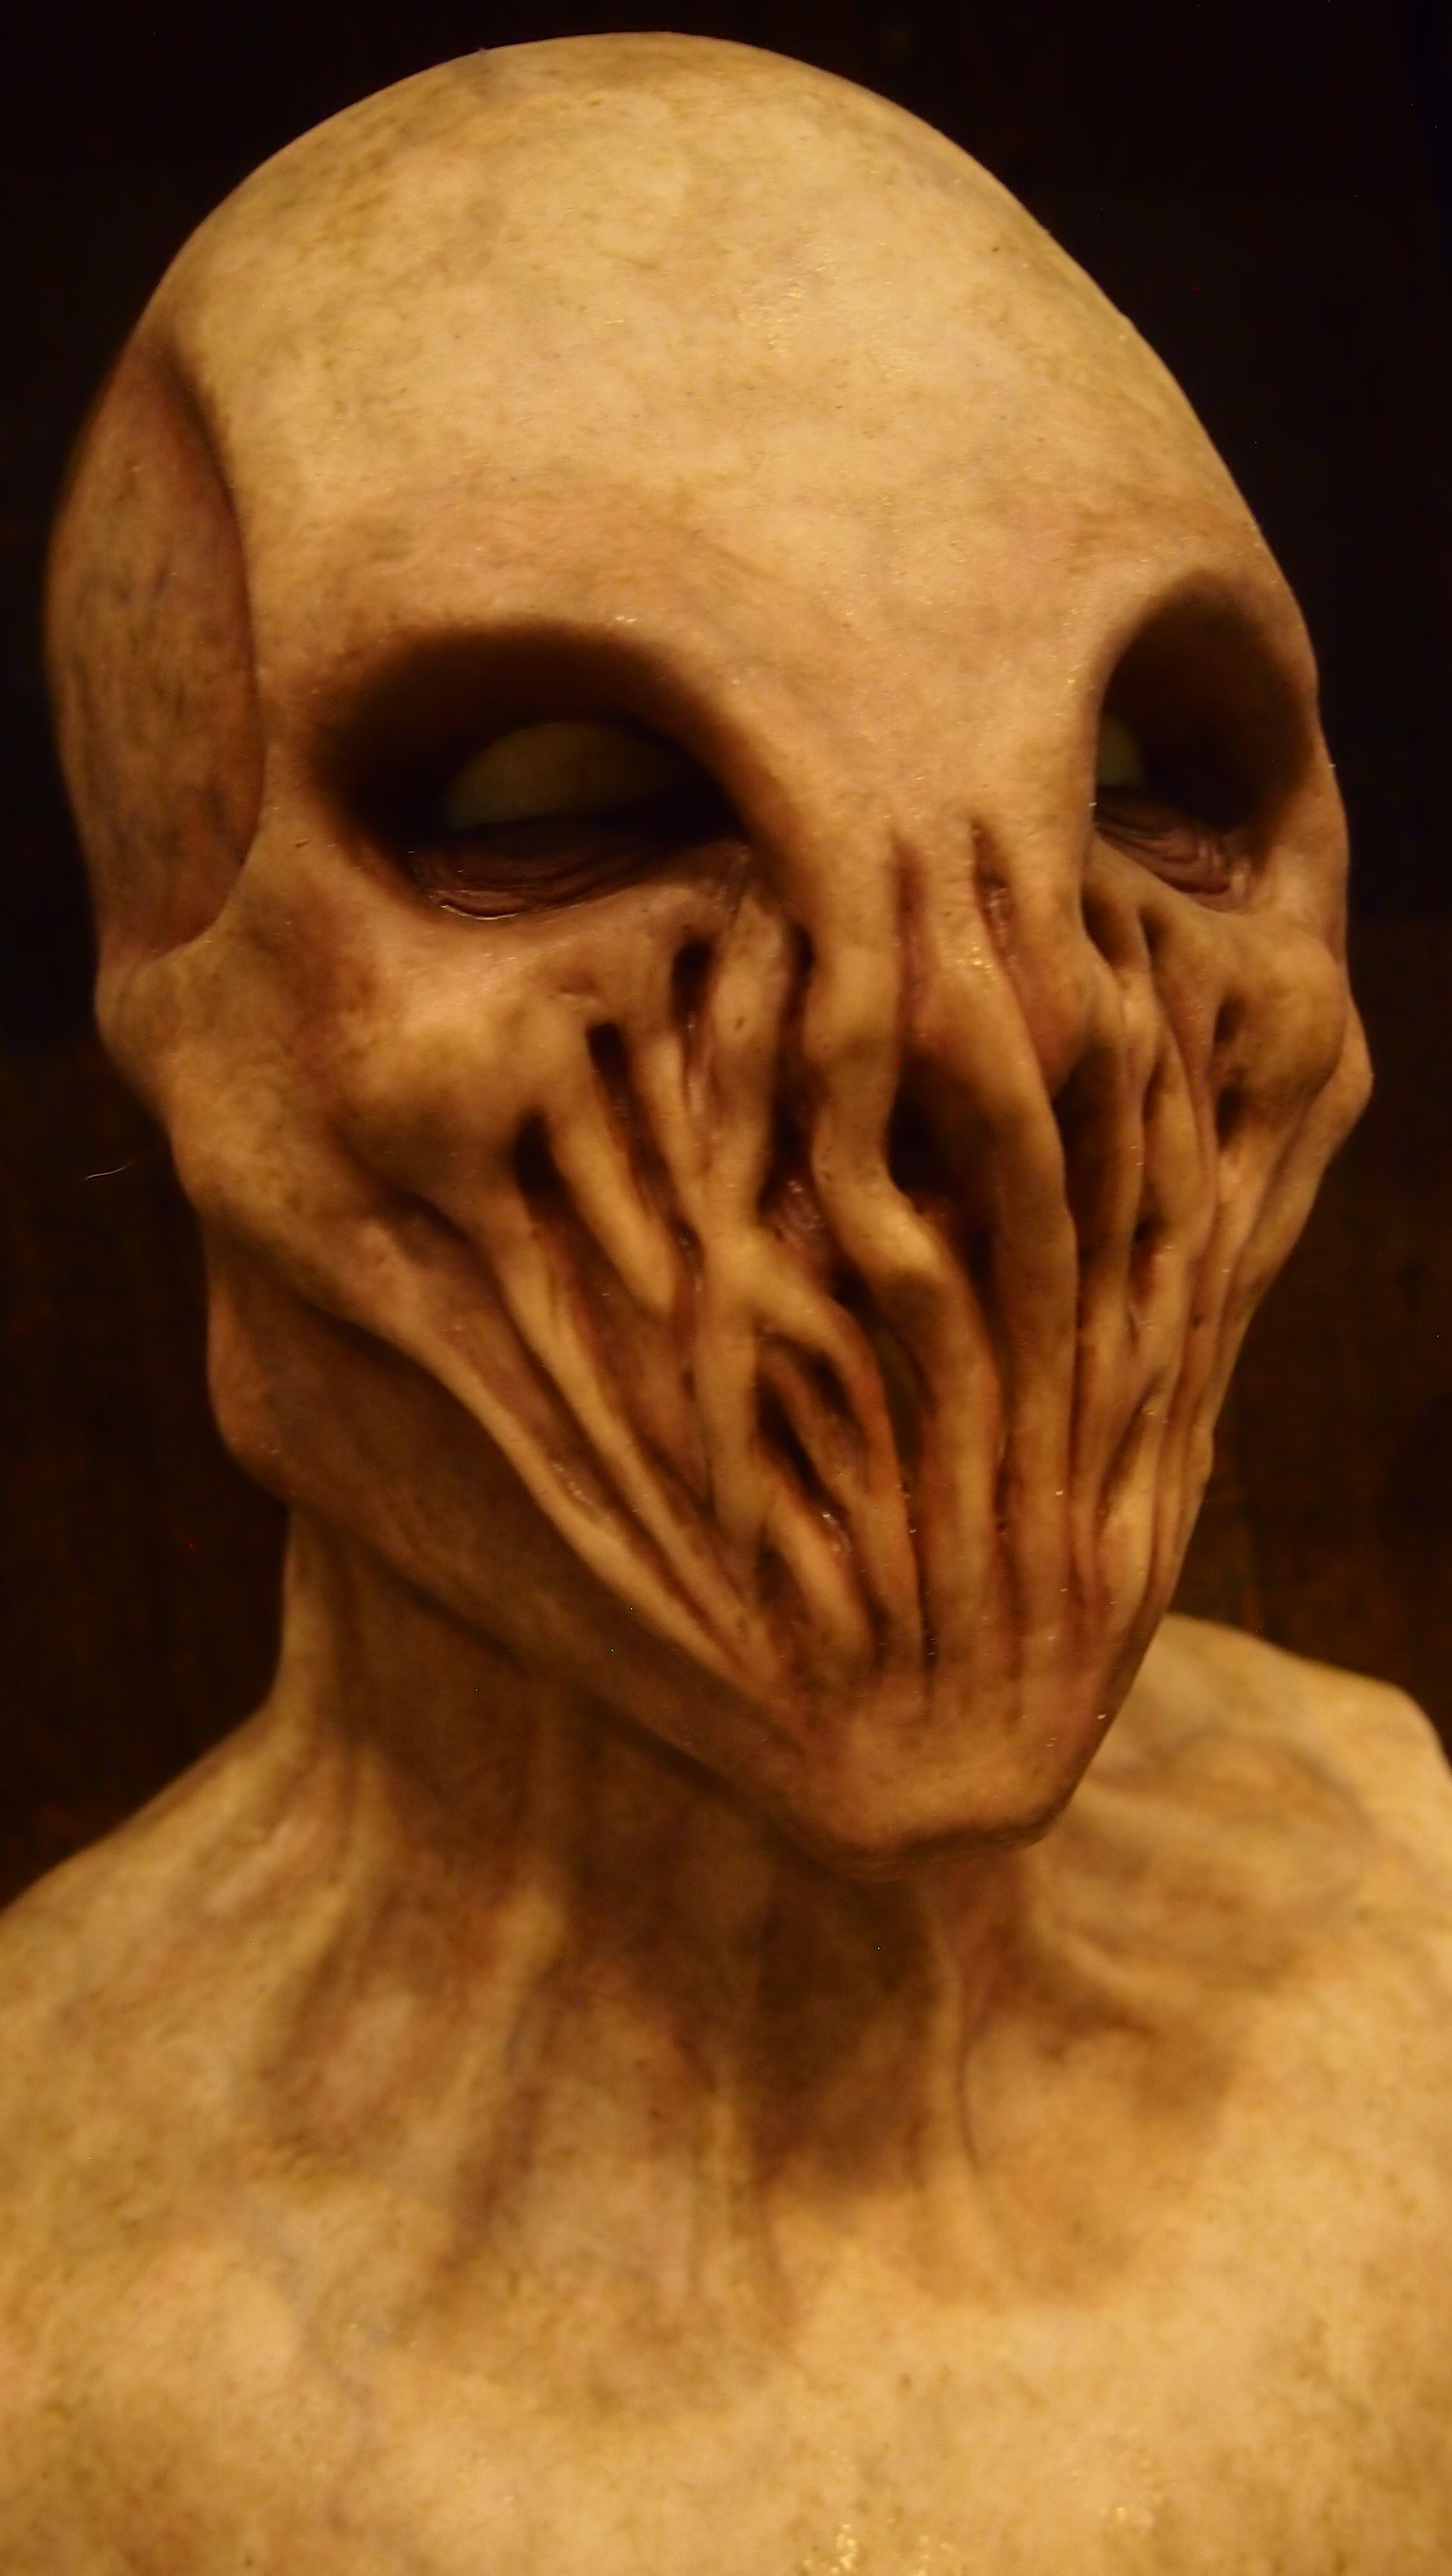 An Alien silicone mask from Shattered FX at the St. Louis ...